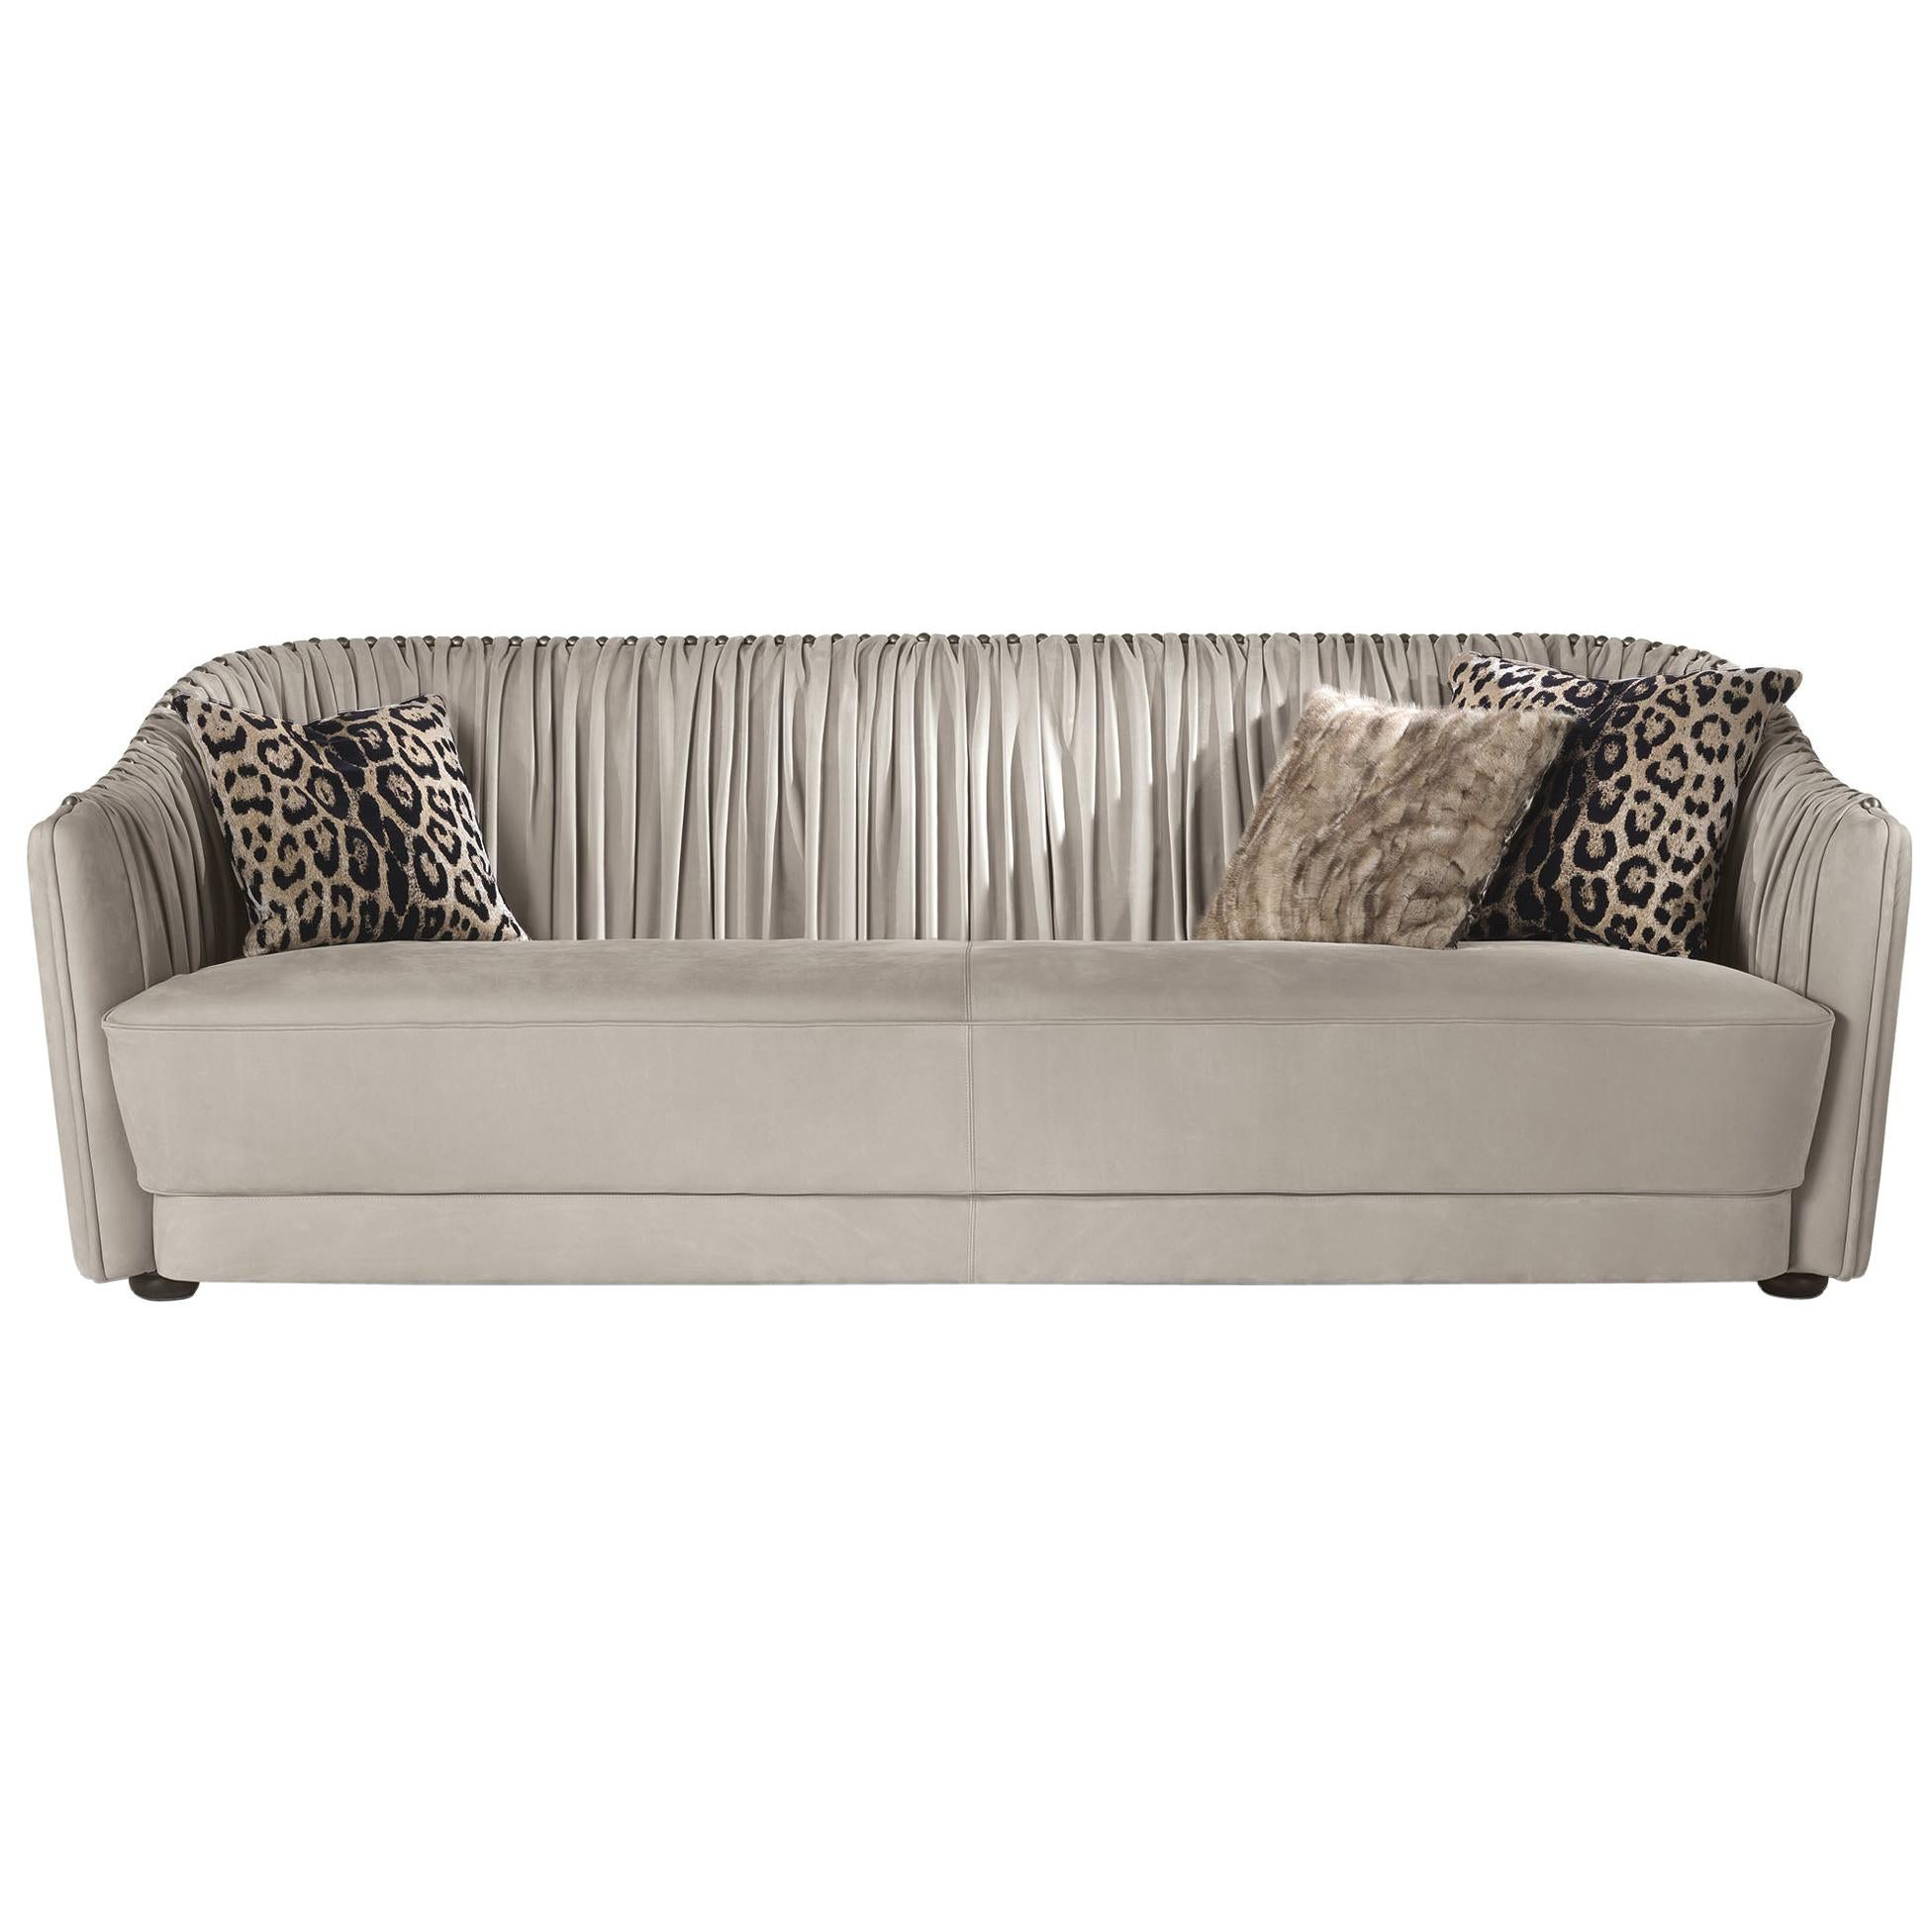 Sharpei 3-Seater Sofa in Leather by Roberto Cavalli Home Interiors